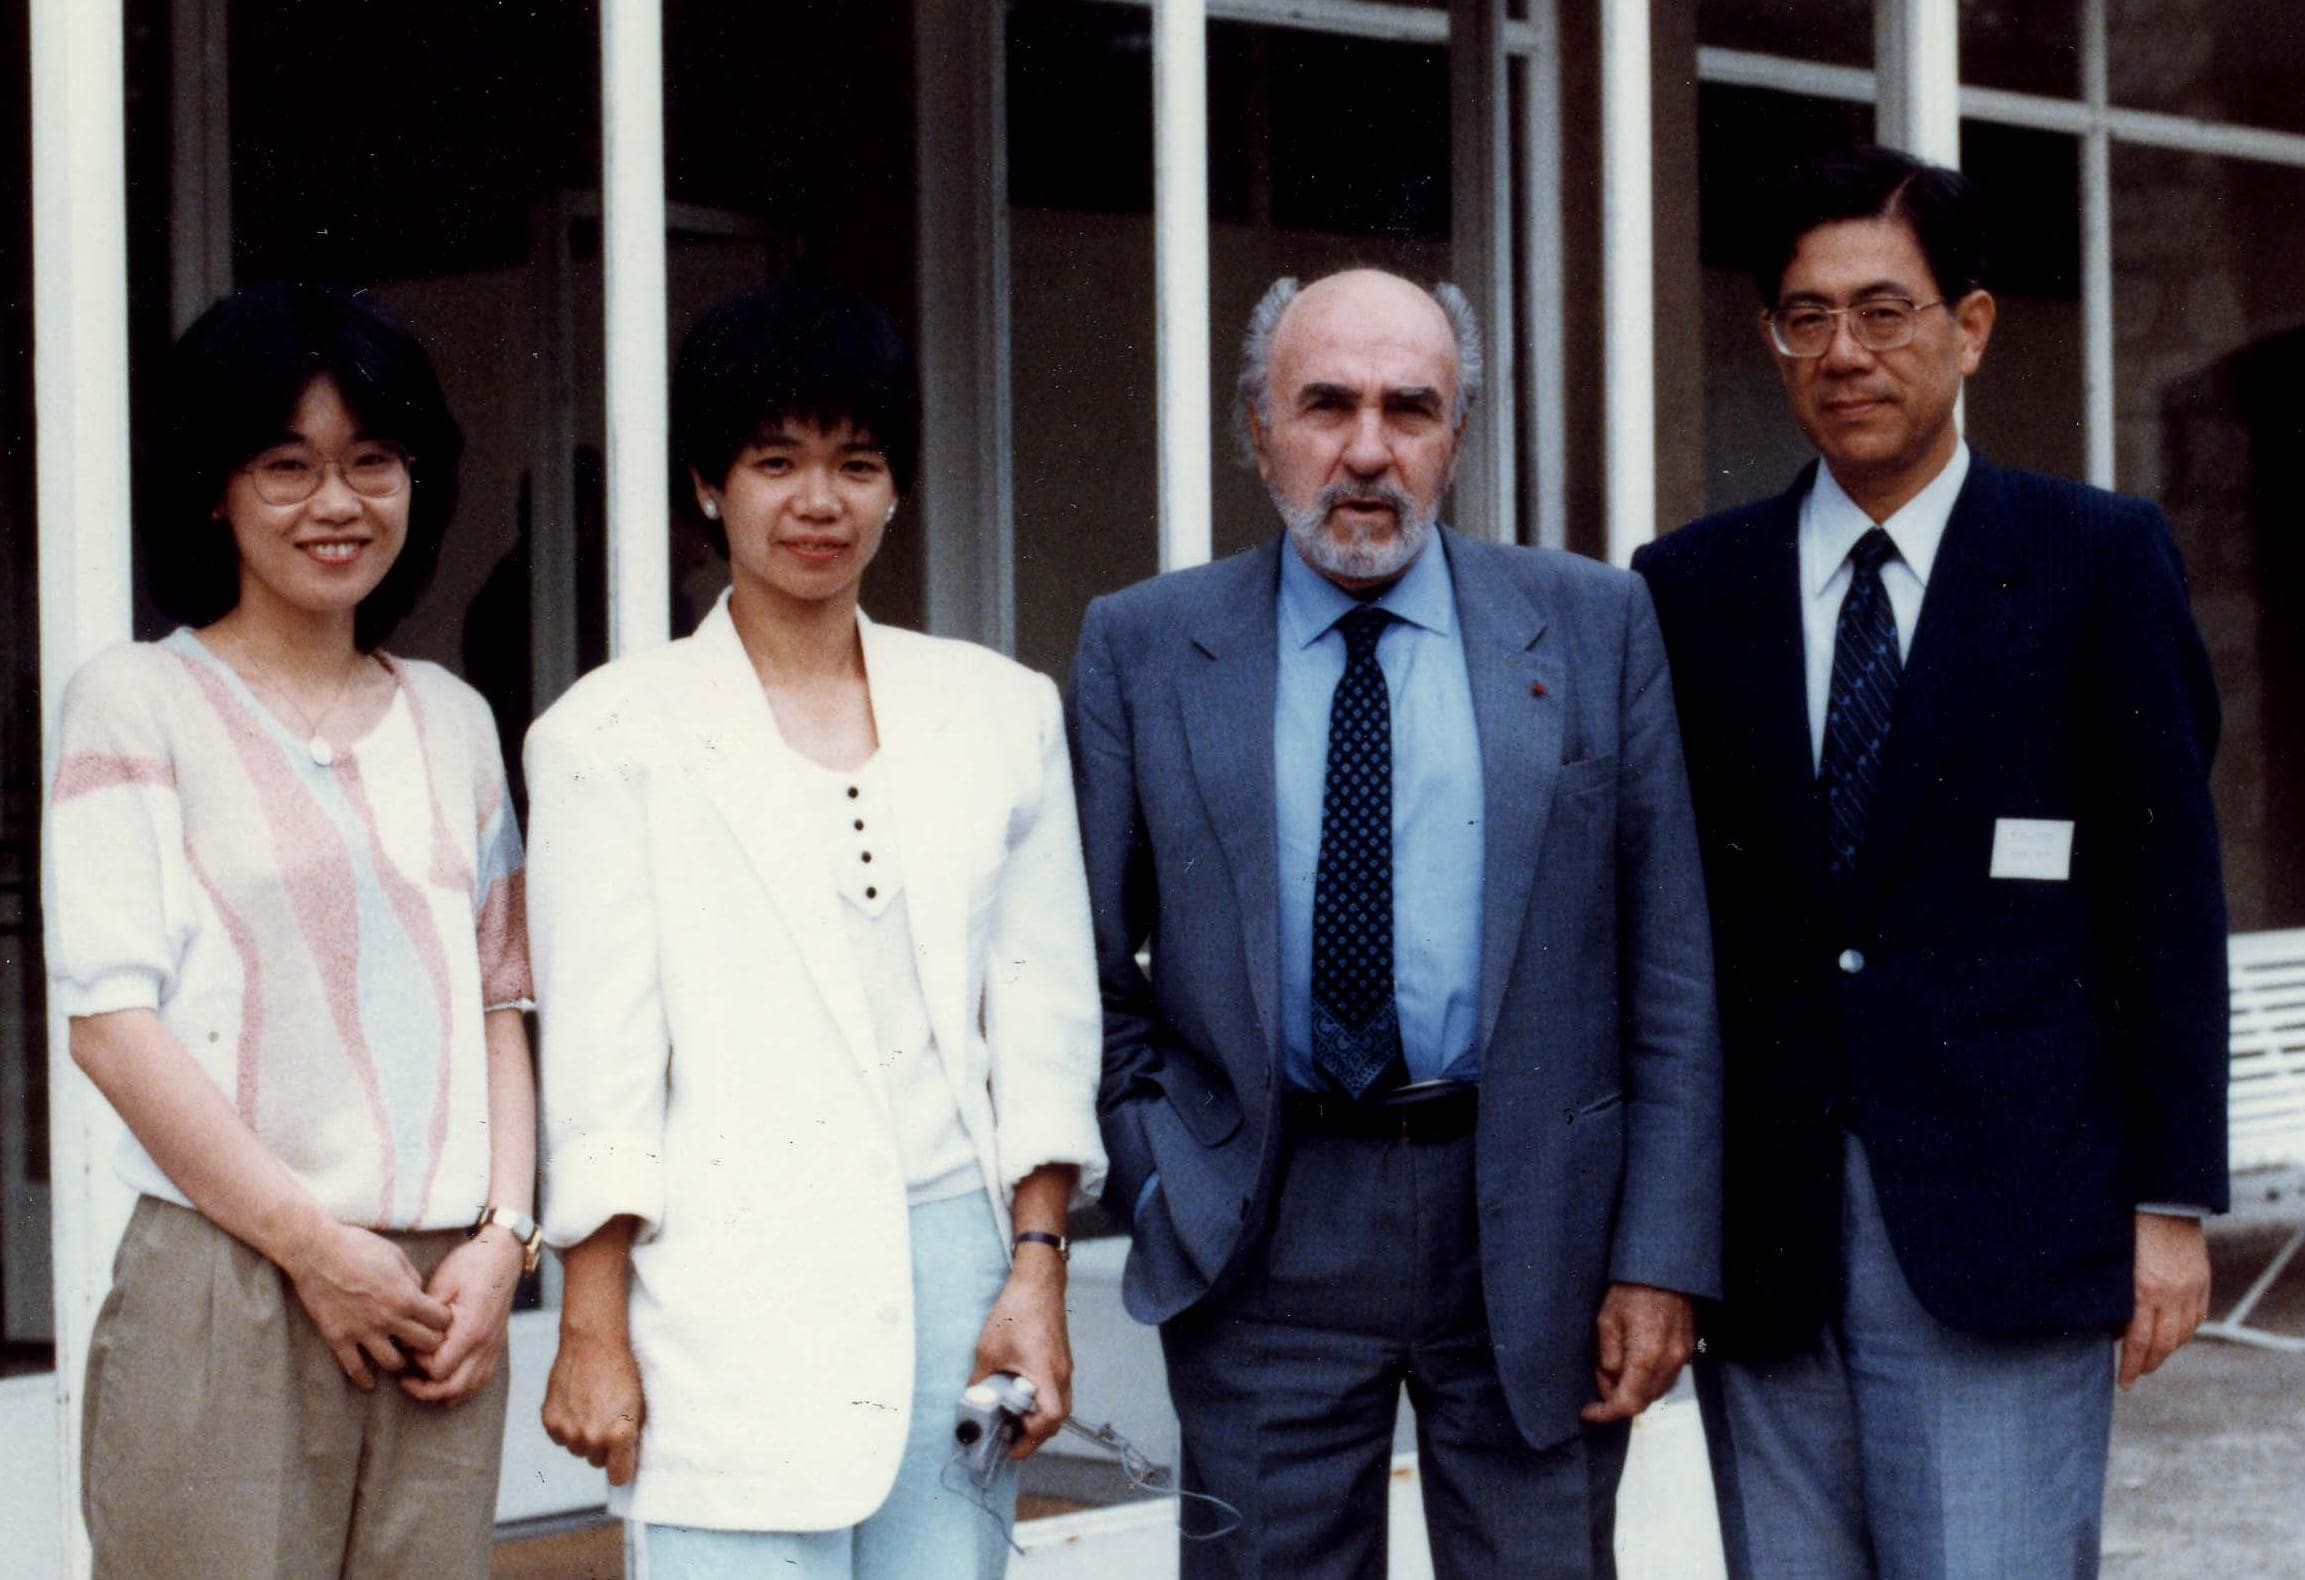 Drs. Murakami, Yoshinaga, Gastaut, and Ohtahara